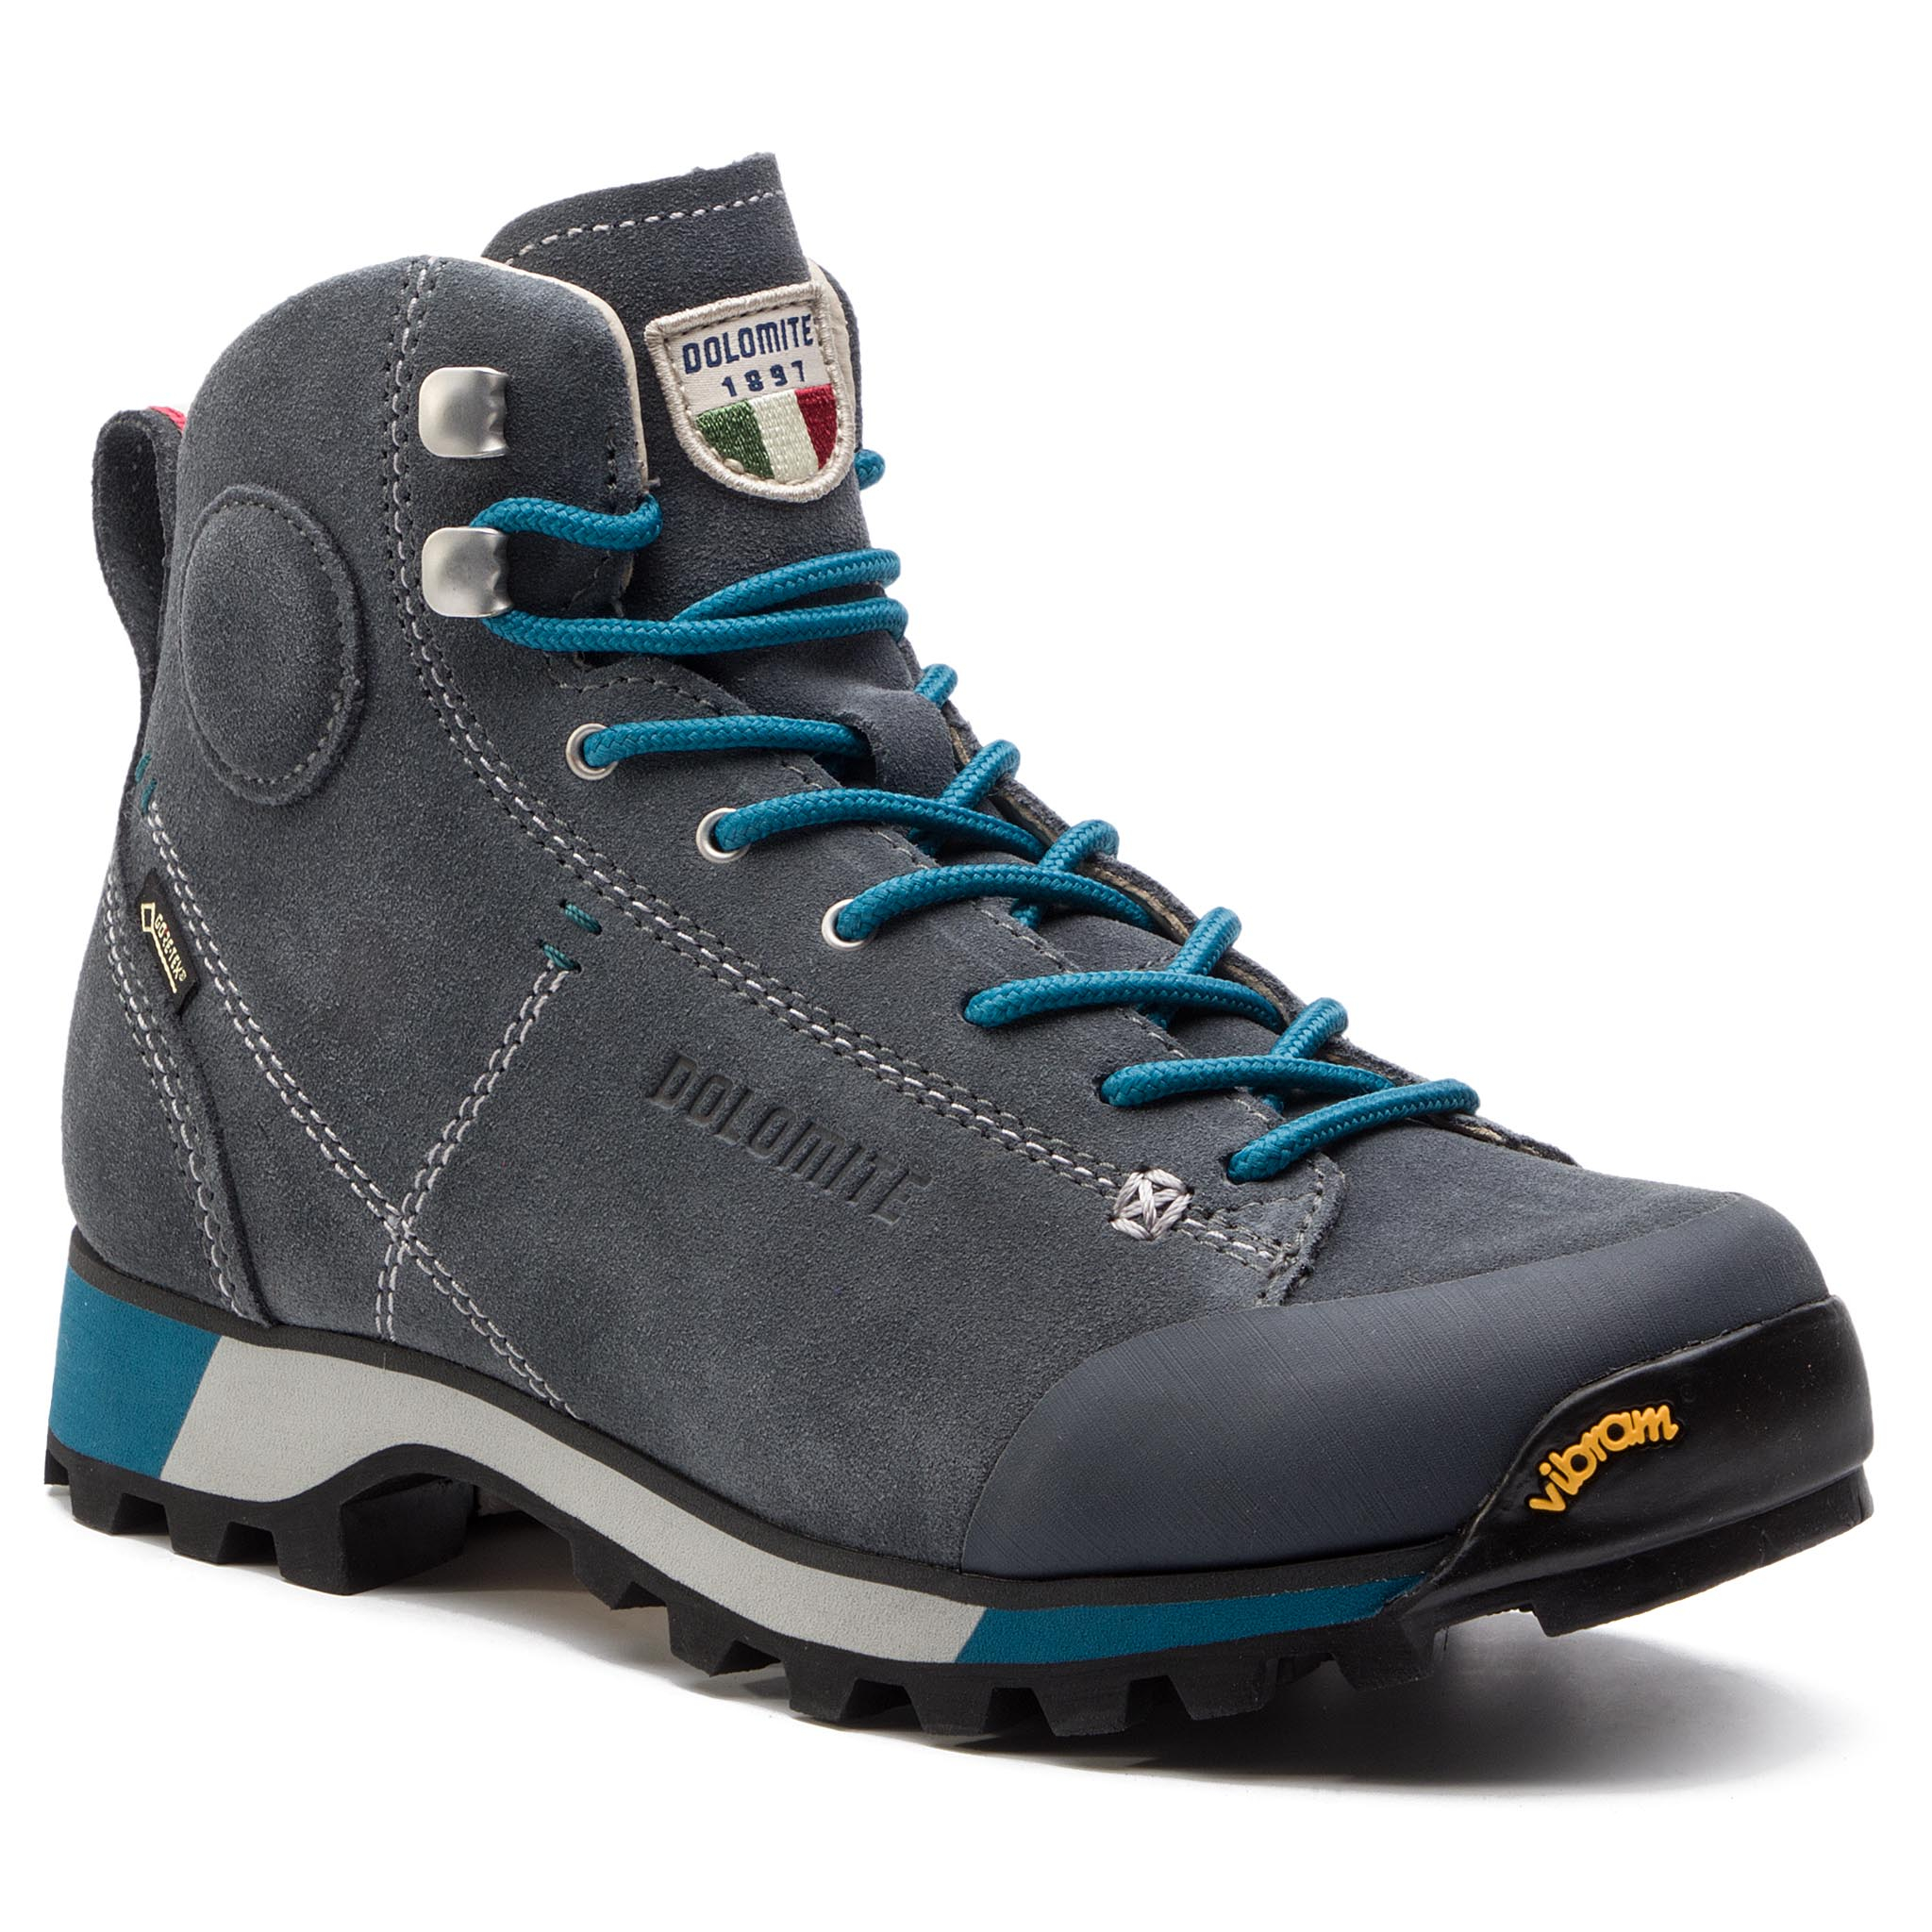 Trekkings Dolomite - Cinquantaquattro Hike W Gtx Gore-Tex 269483-1076005 Gunmetal Grey imagine epantofi.ro 2021